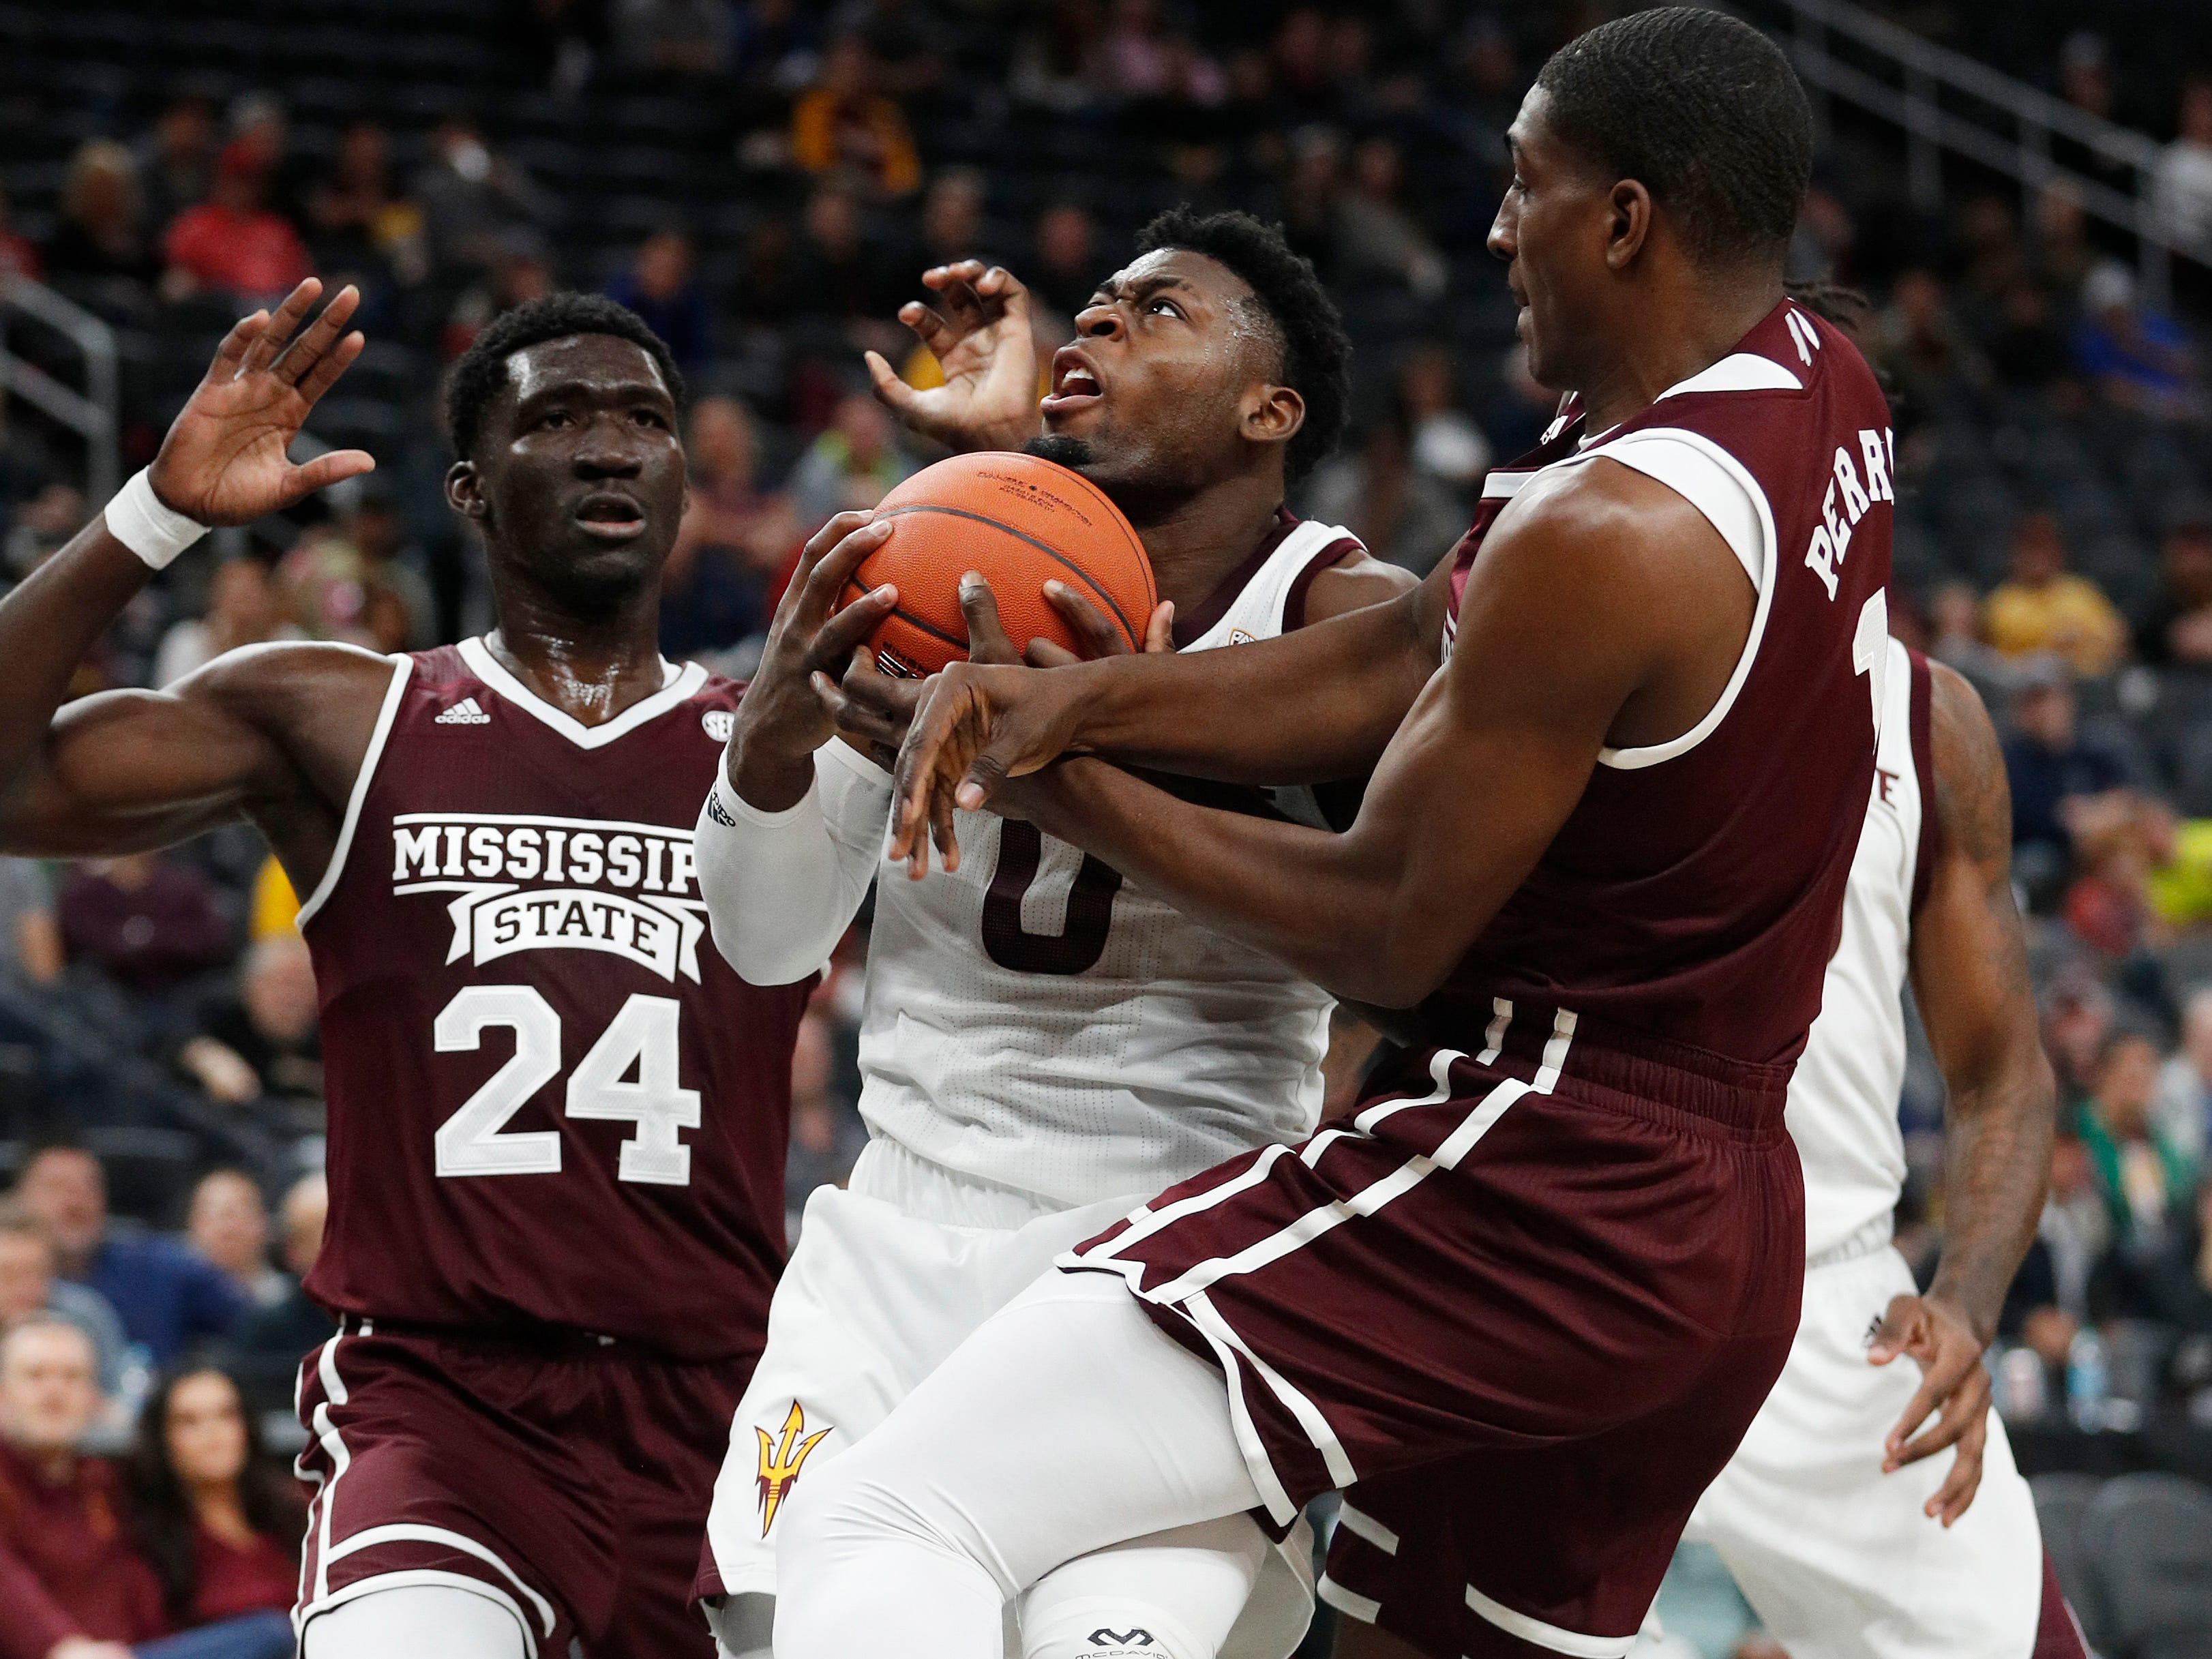 Arizona State's Luguentz Dort (0) drives through Mississippi State's Abdul Ado (24) and Reggie Perry during the first half of a NCAA college basketball game Monday, Nov. 19, 2018, in Las Vegas. (AP Photo/John Locher)